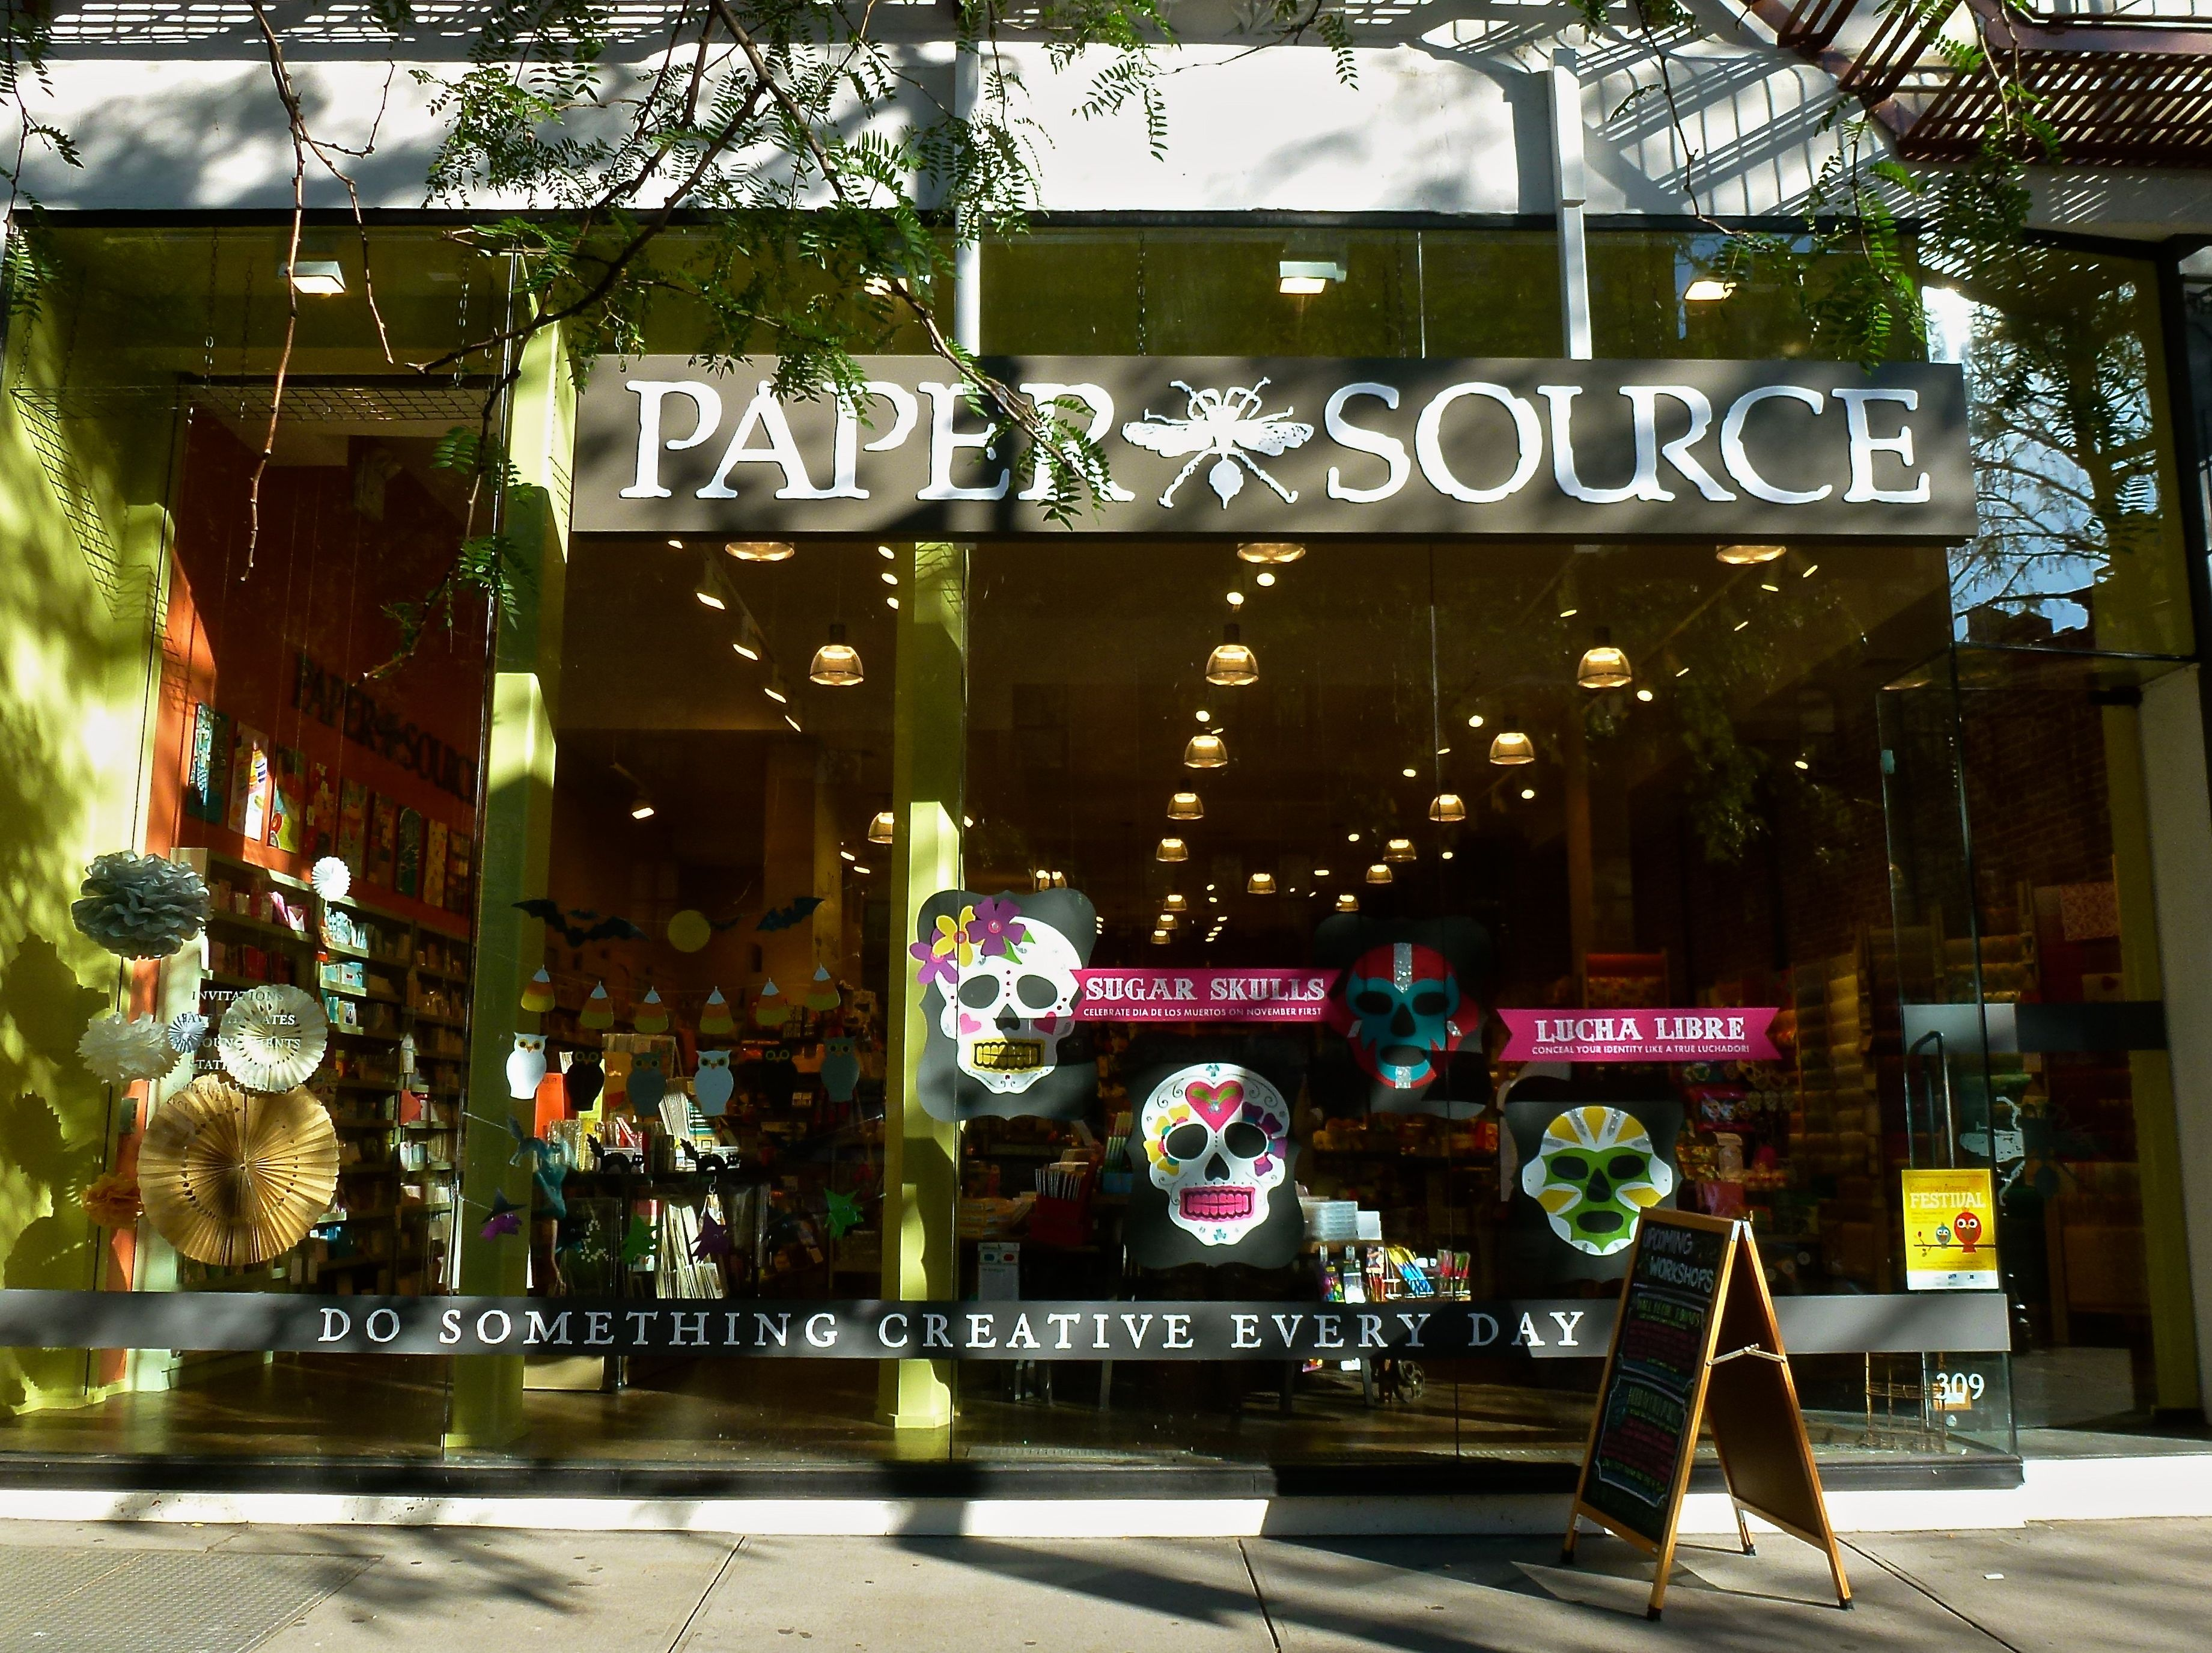 paper source dallas 3 reviews of paper source ohmygosh i can't beleive there's a papersource in uptown 1st, the customer service here is amazing i visited thia papersource on two.